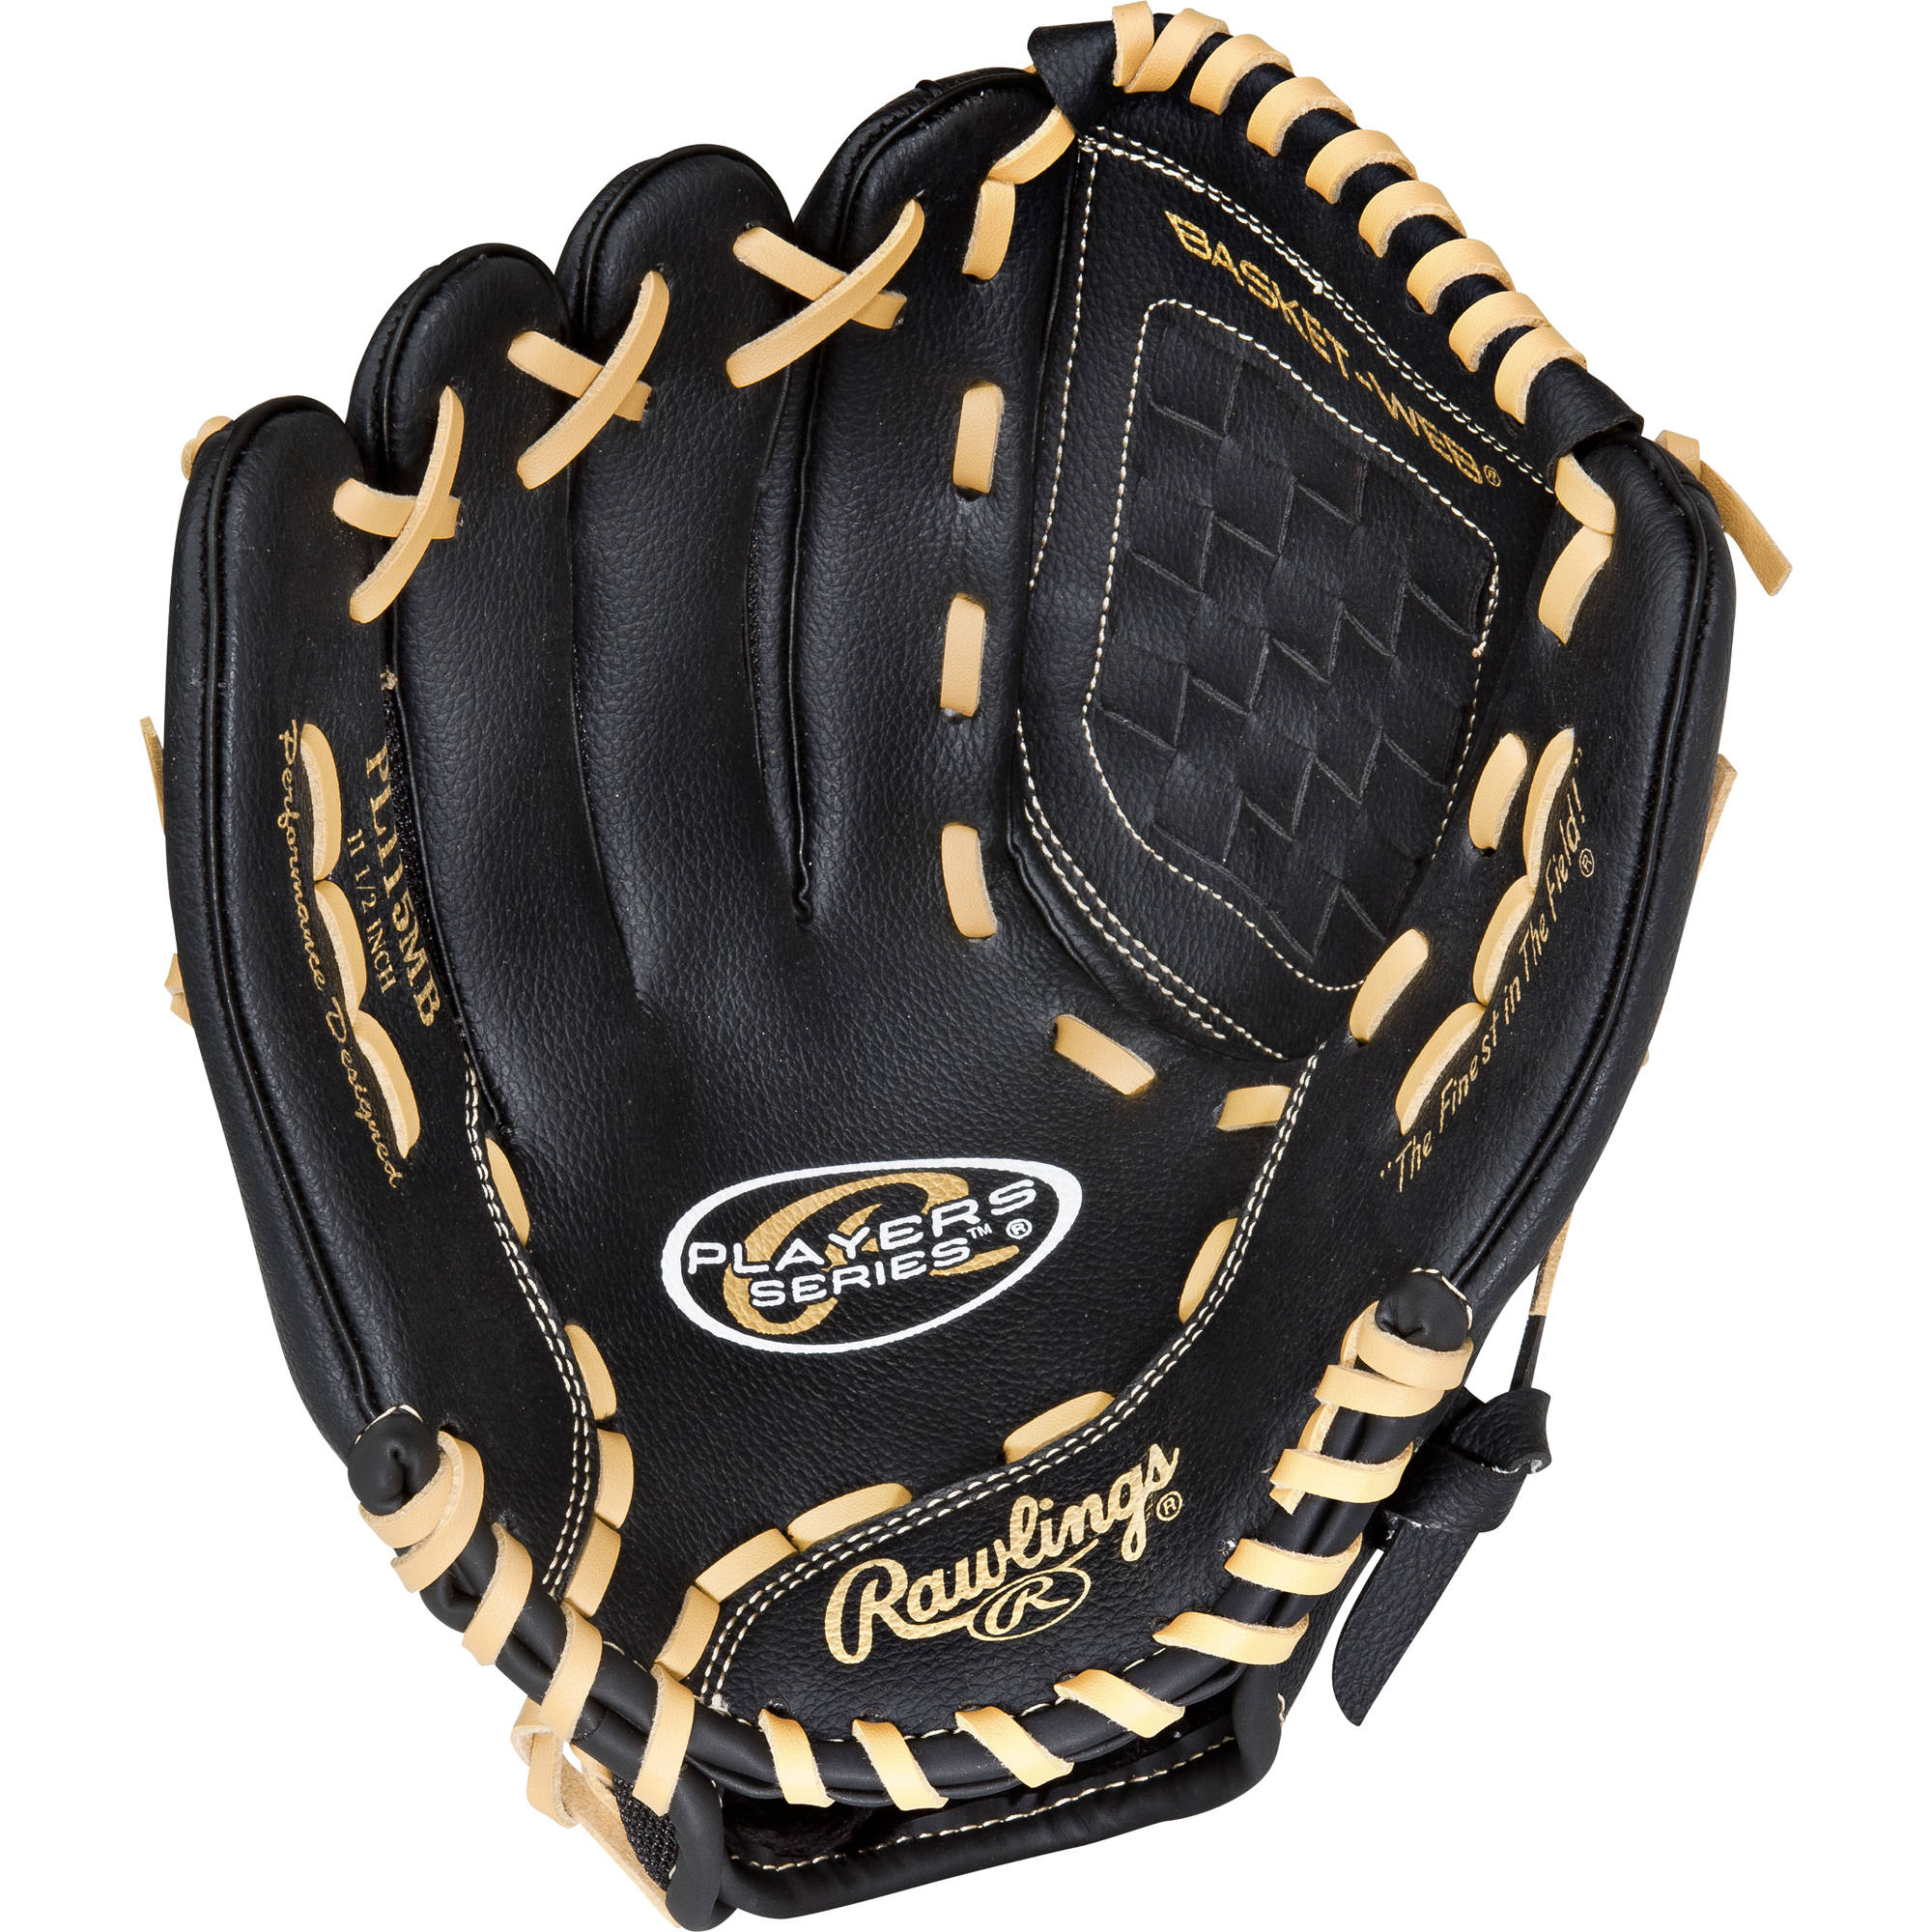 "Rawlings Baseball 11.5"" Players Series Left-Hand Throwing Baseball Fielders Glove PL115MBLH"